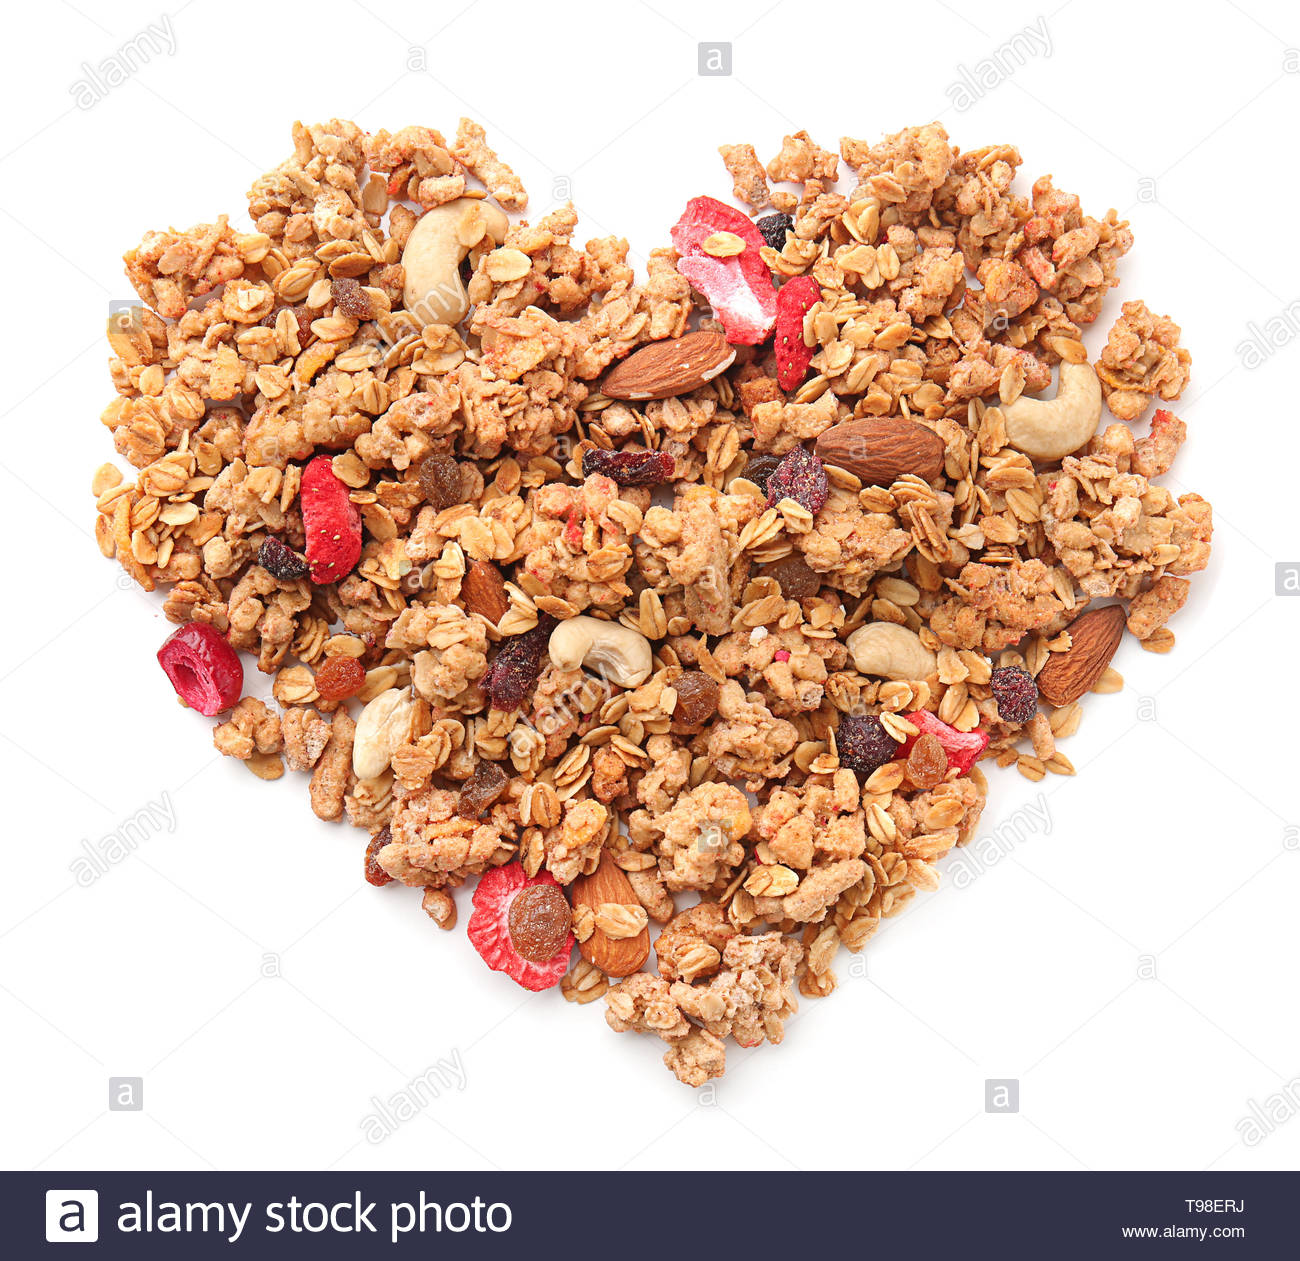 Heart made with granola on white background Stock Photo 246664310 1300x1261